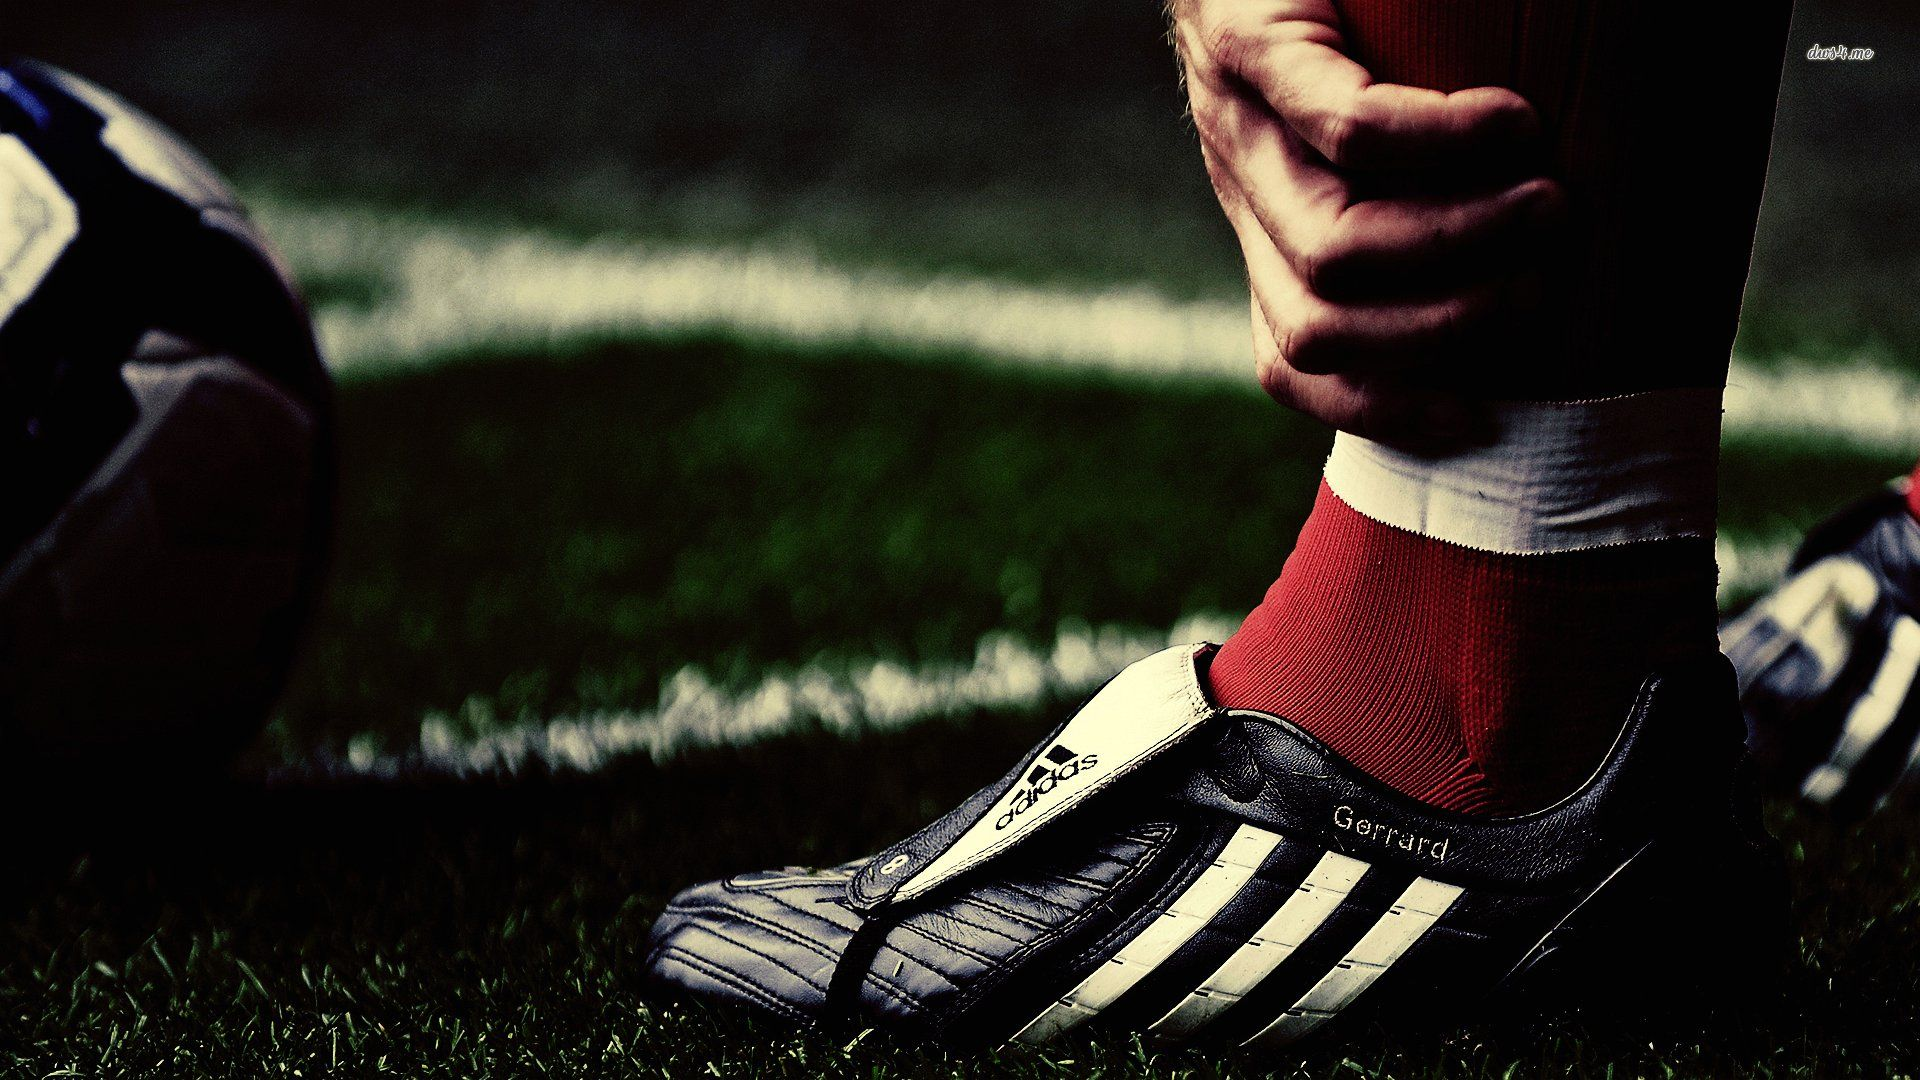 Amazing Wallpaper High Quality Adidas - fea819151a1ee079b274188cb330f99f  Perfect Image Reference_346528.jpg